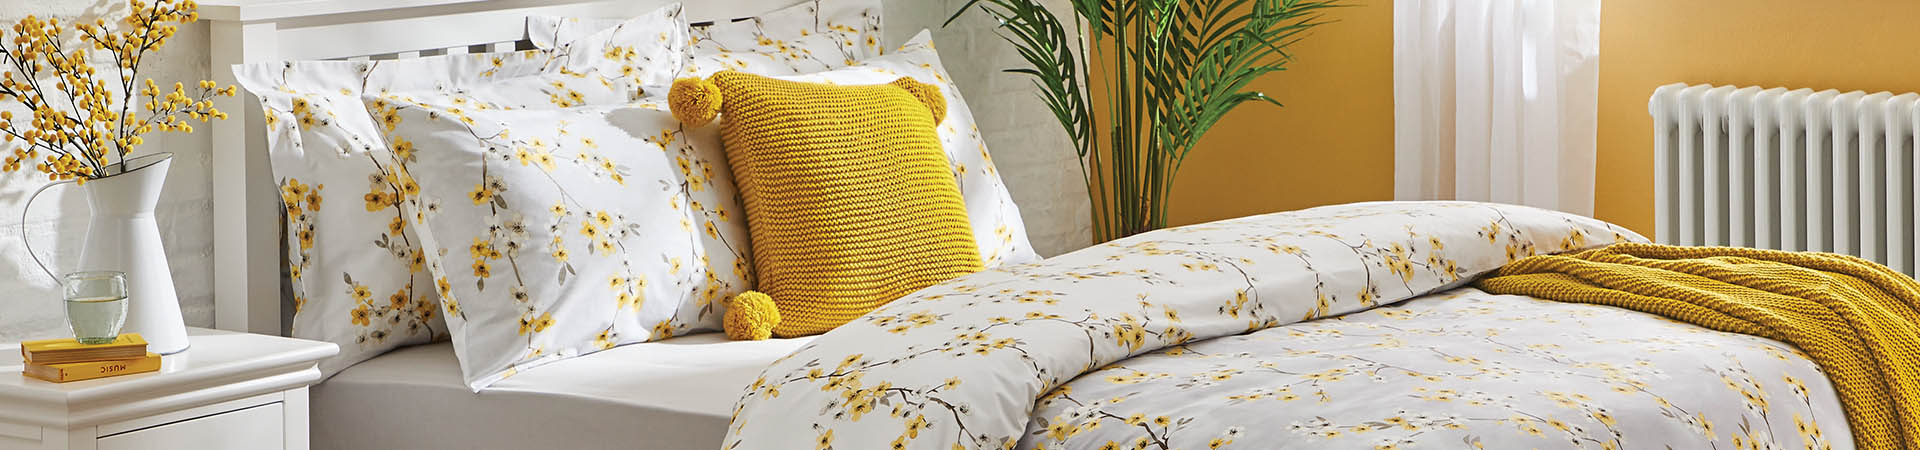 yellow-bedding.jpg